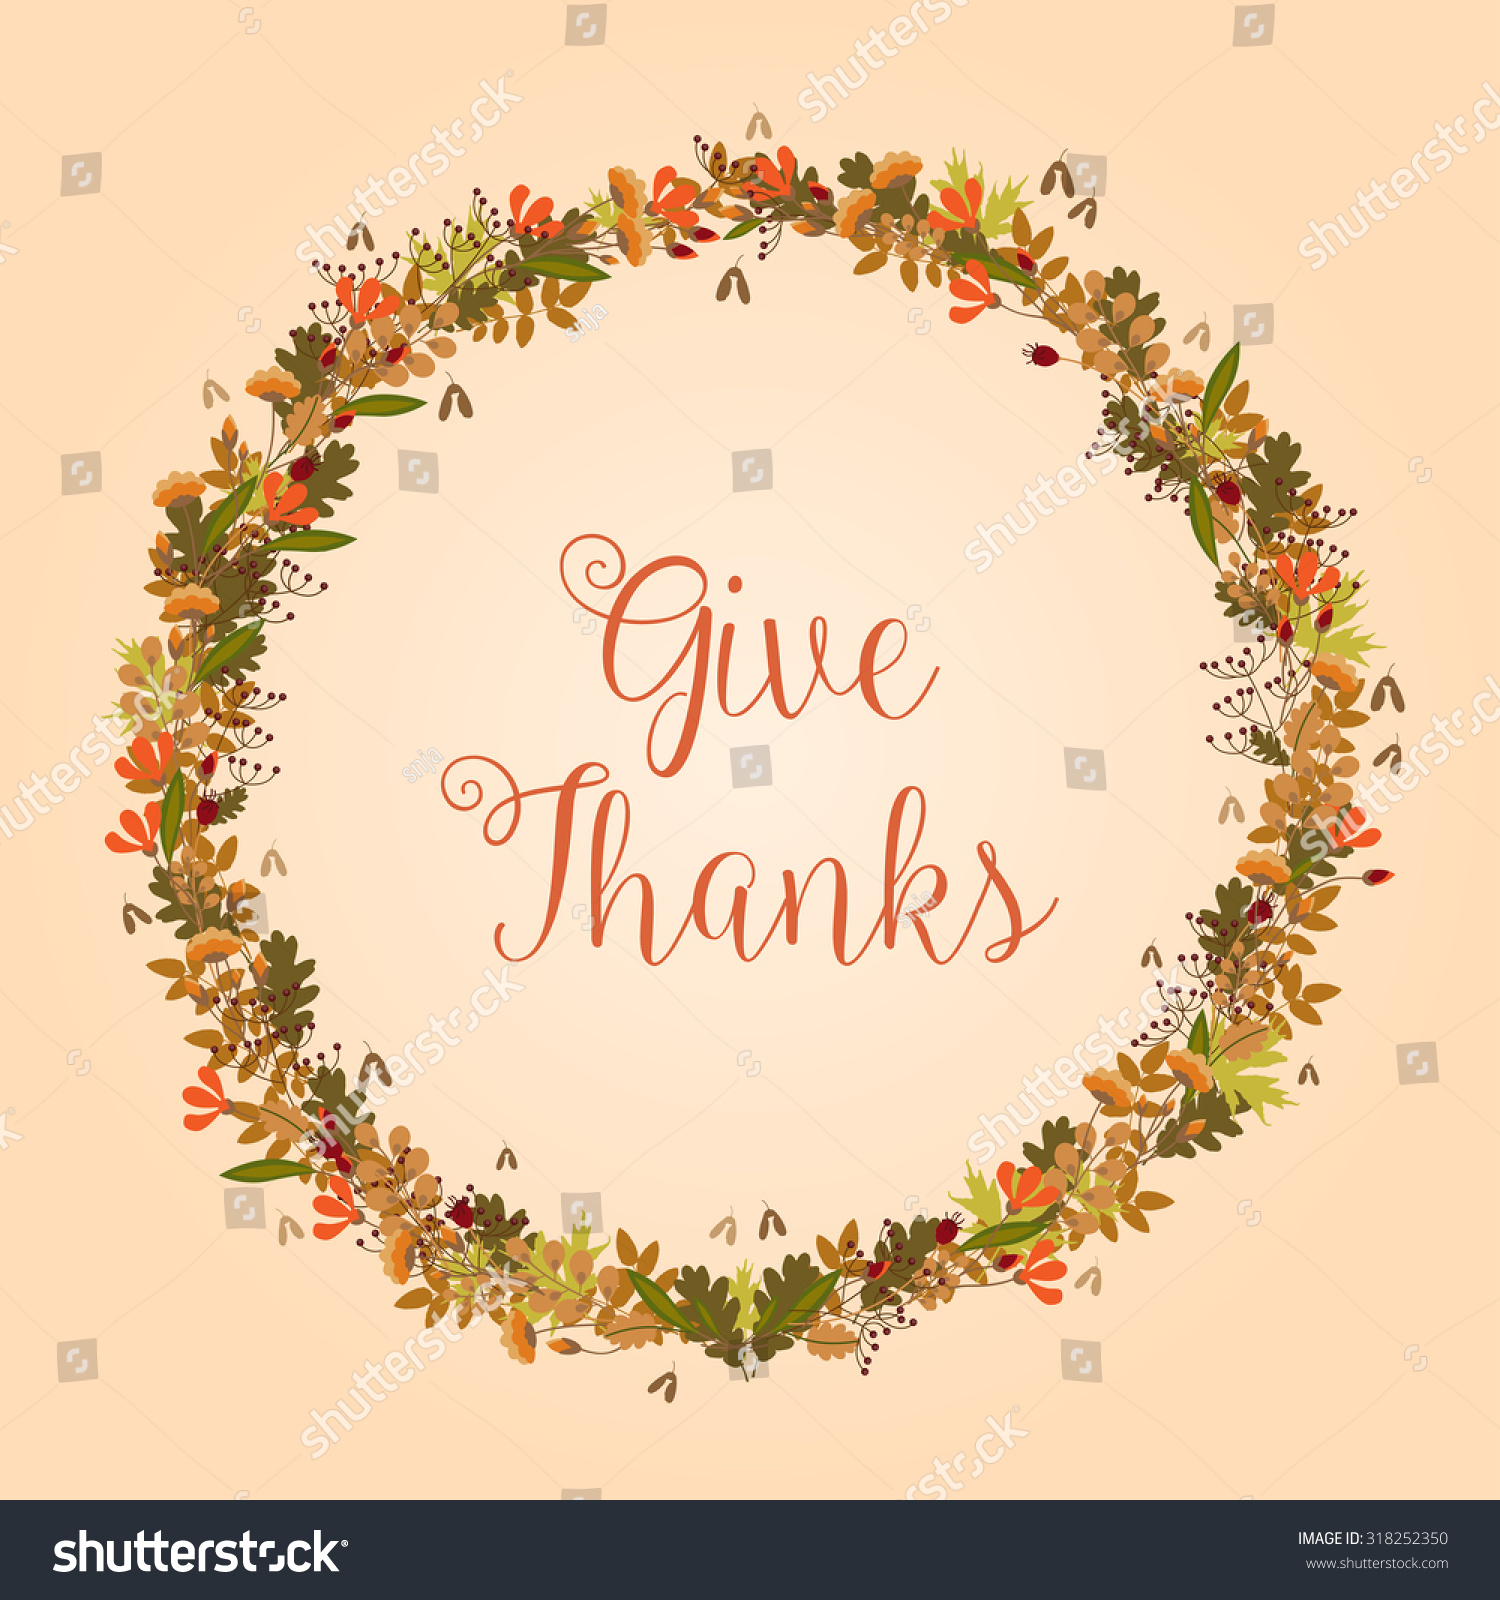 Give Thanks - Thanksgiving, Fall illustration - vector background ...